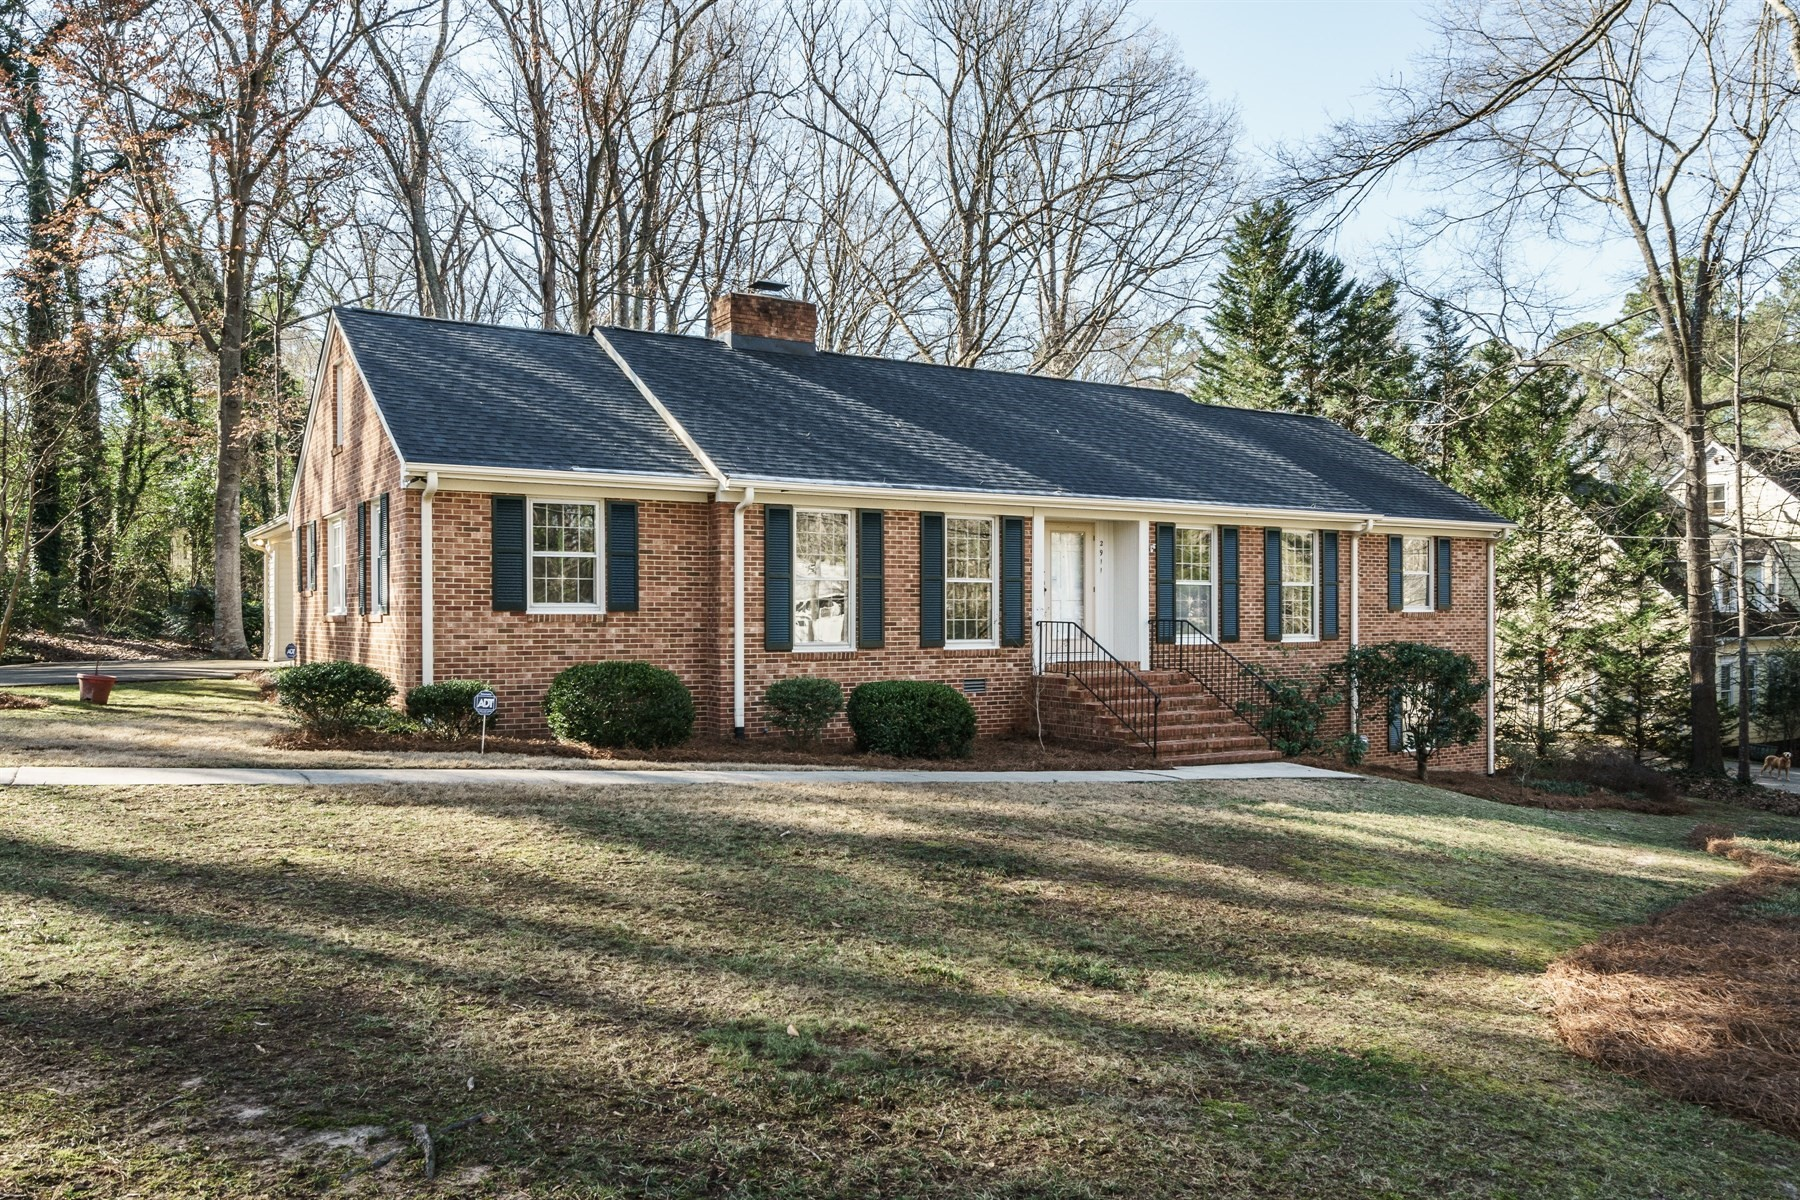 Single Family Home for Sale at Hope Valley Ranch 2911 Buckingham Road Durham, North Carolina 27707 United StatesIn/Around: Cary, Chapel Hill, Raleigh